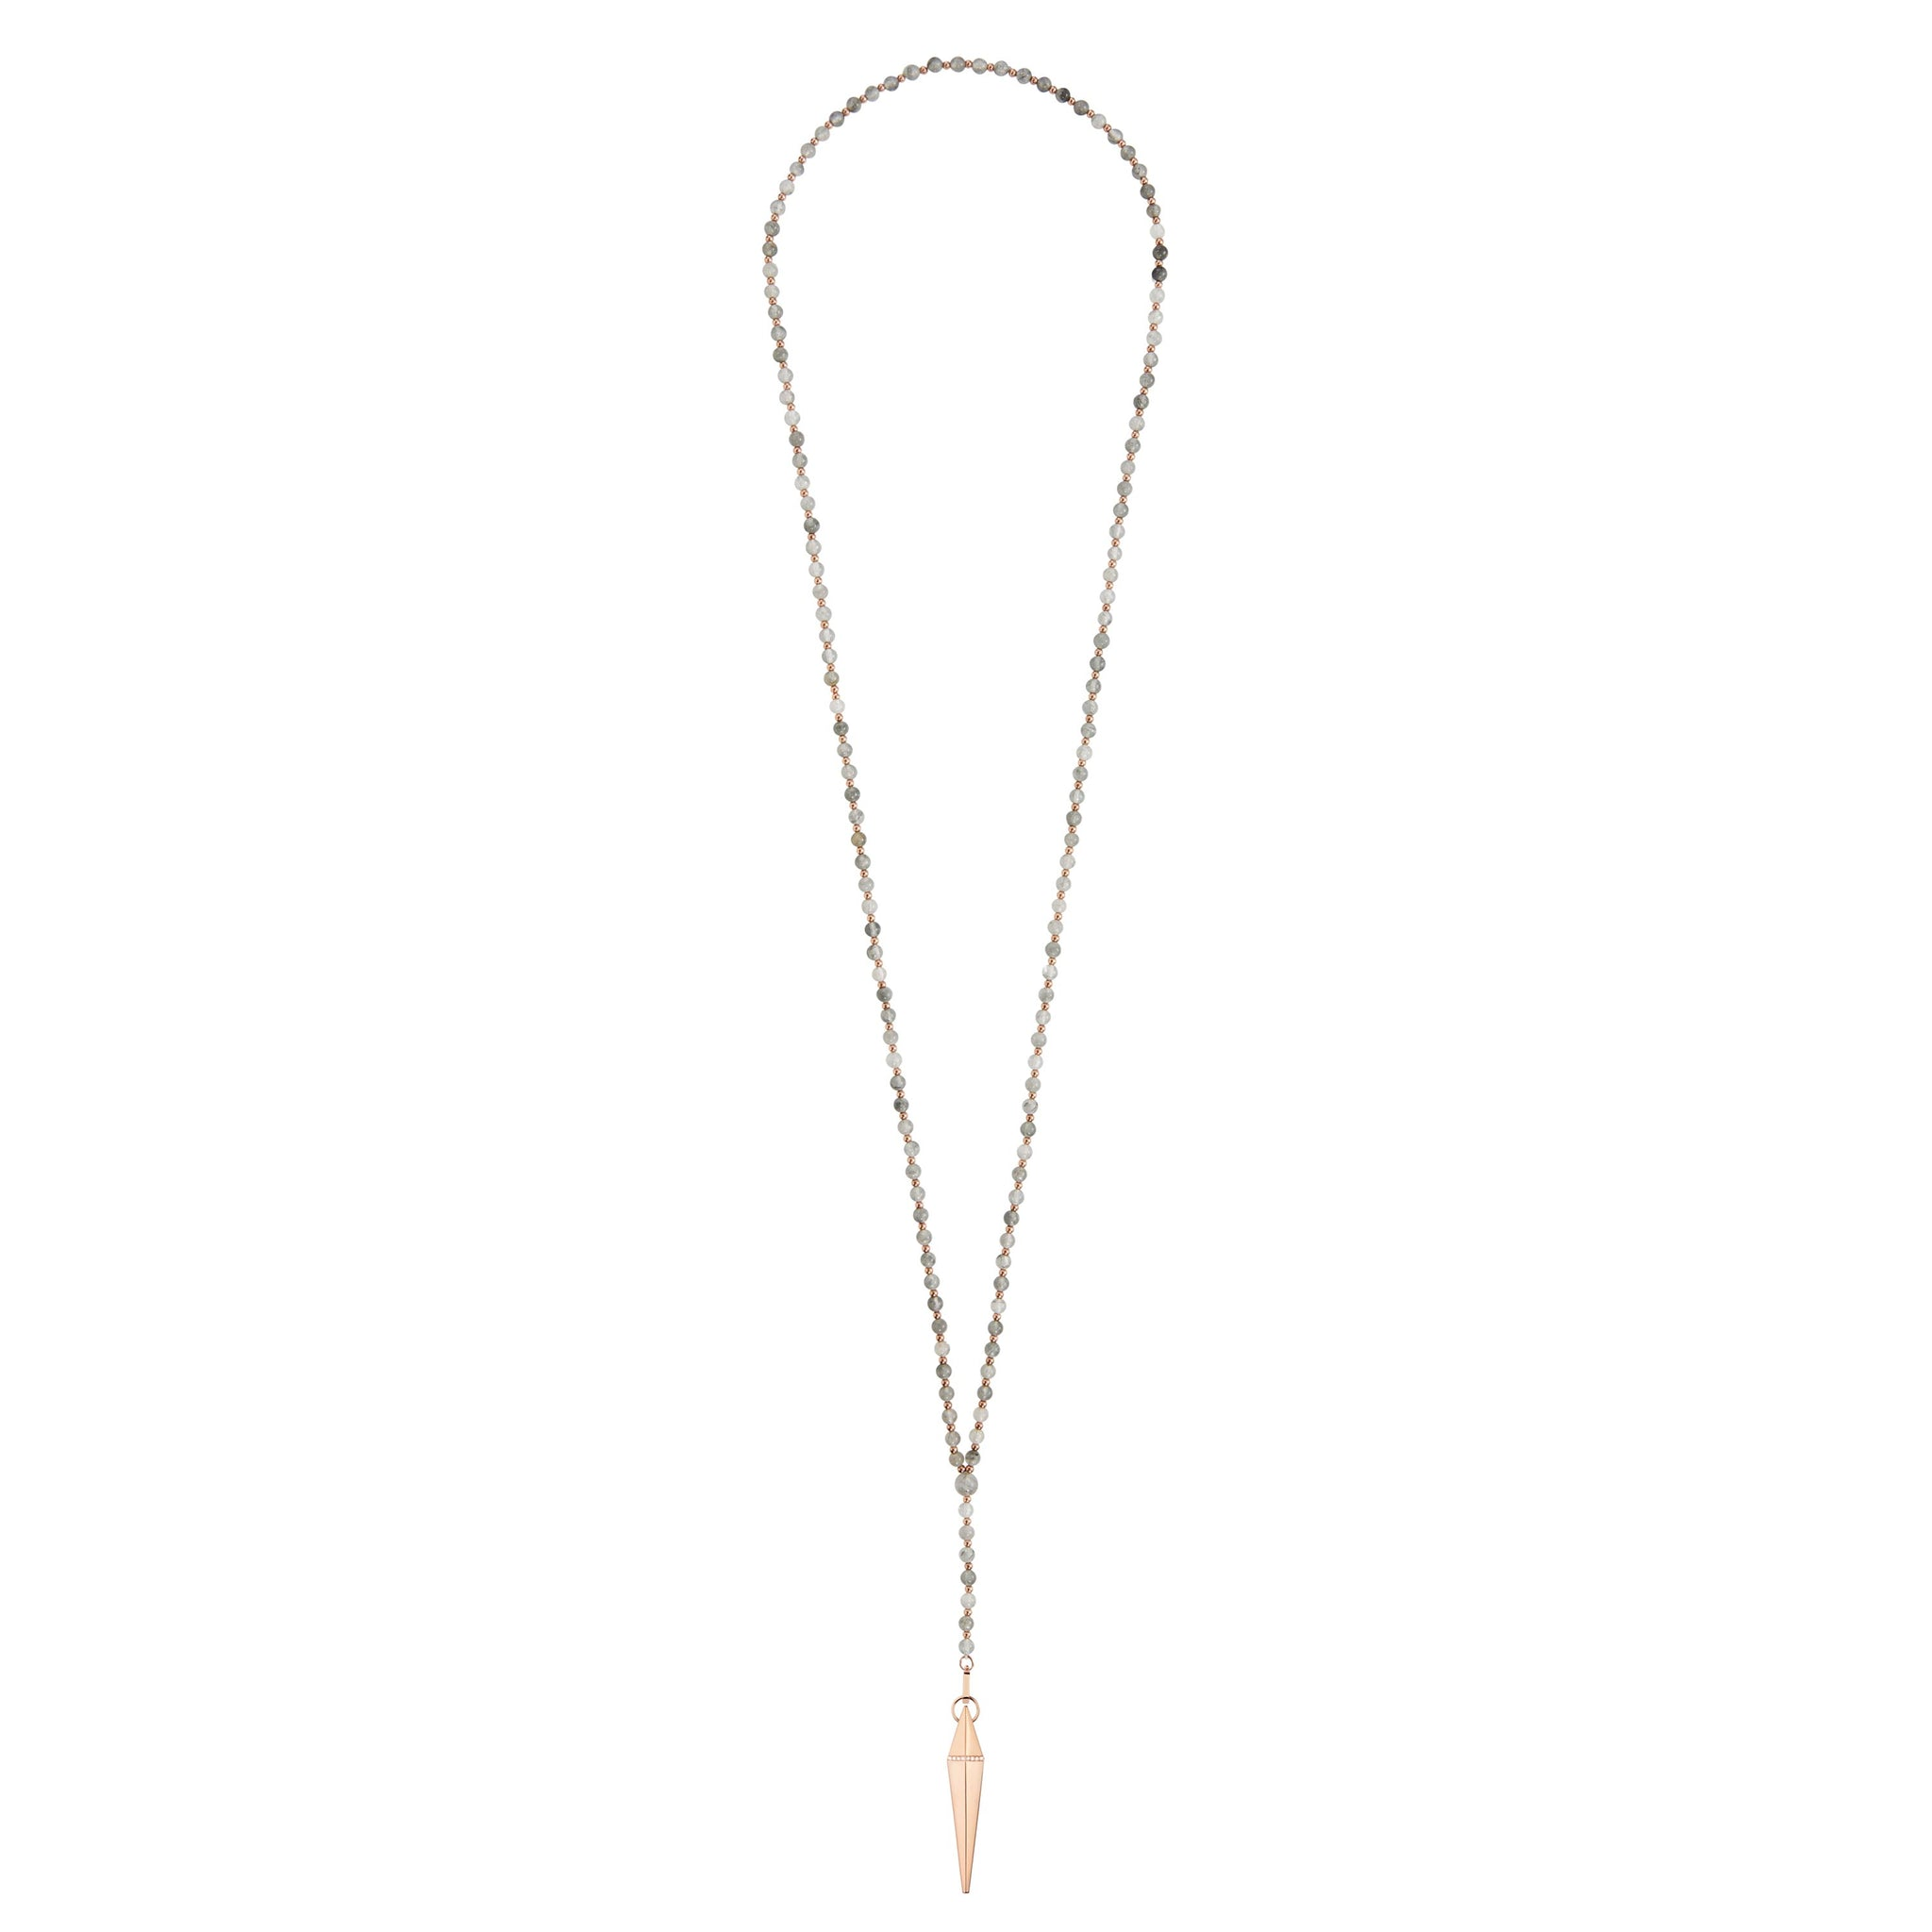 Grey Quartz Spear Necklace